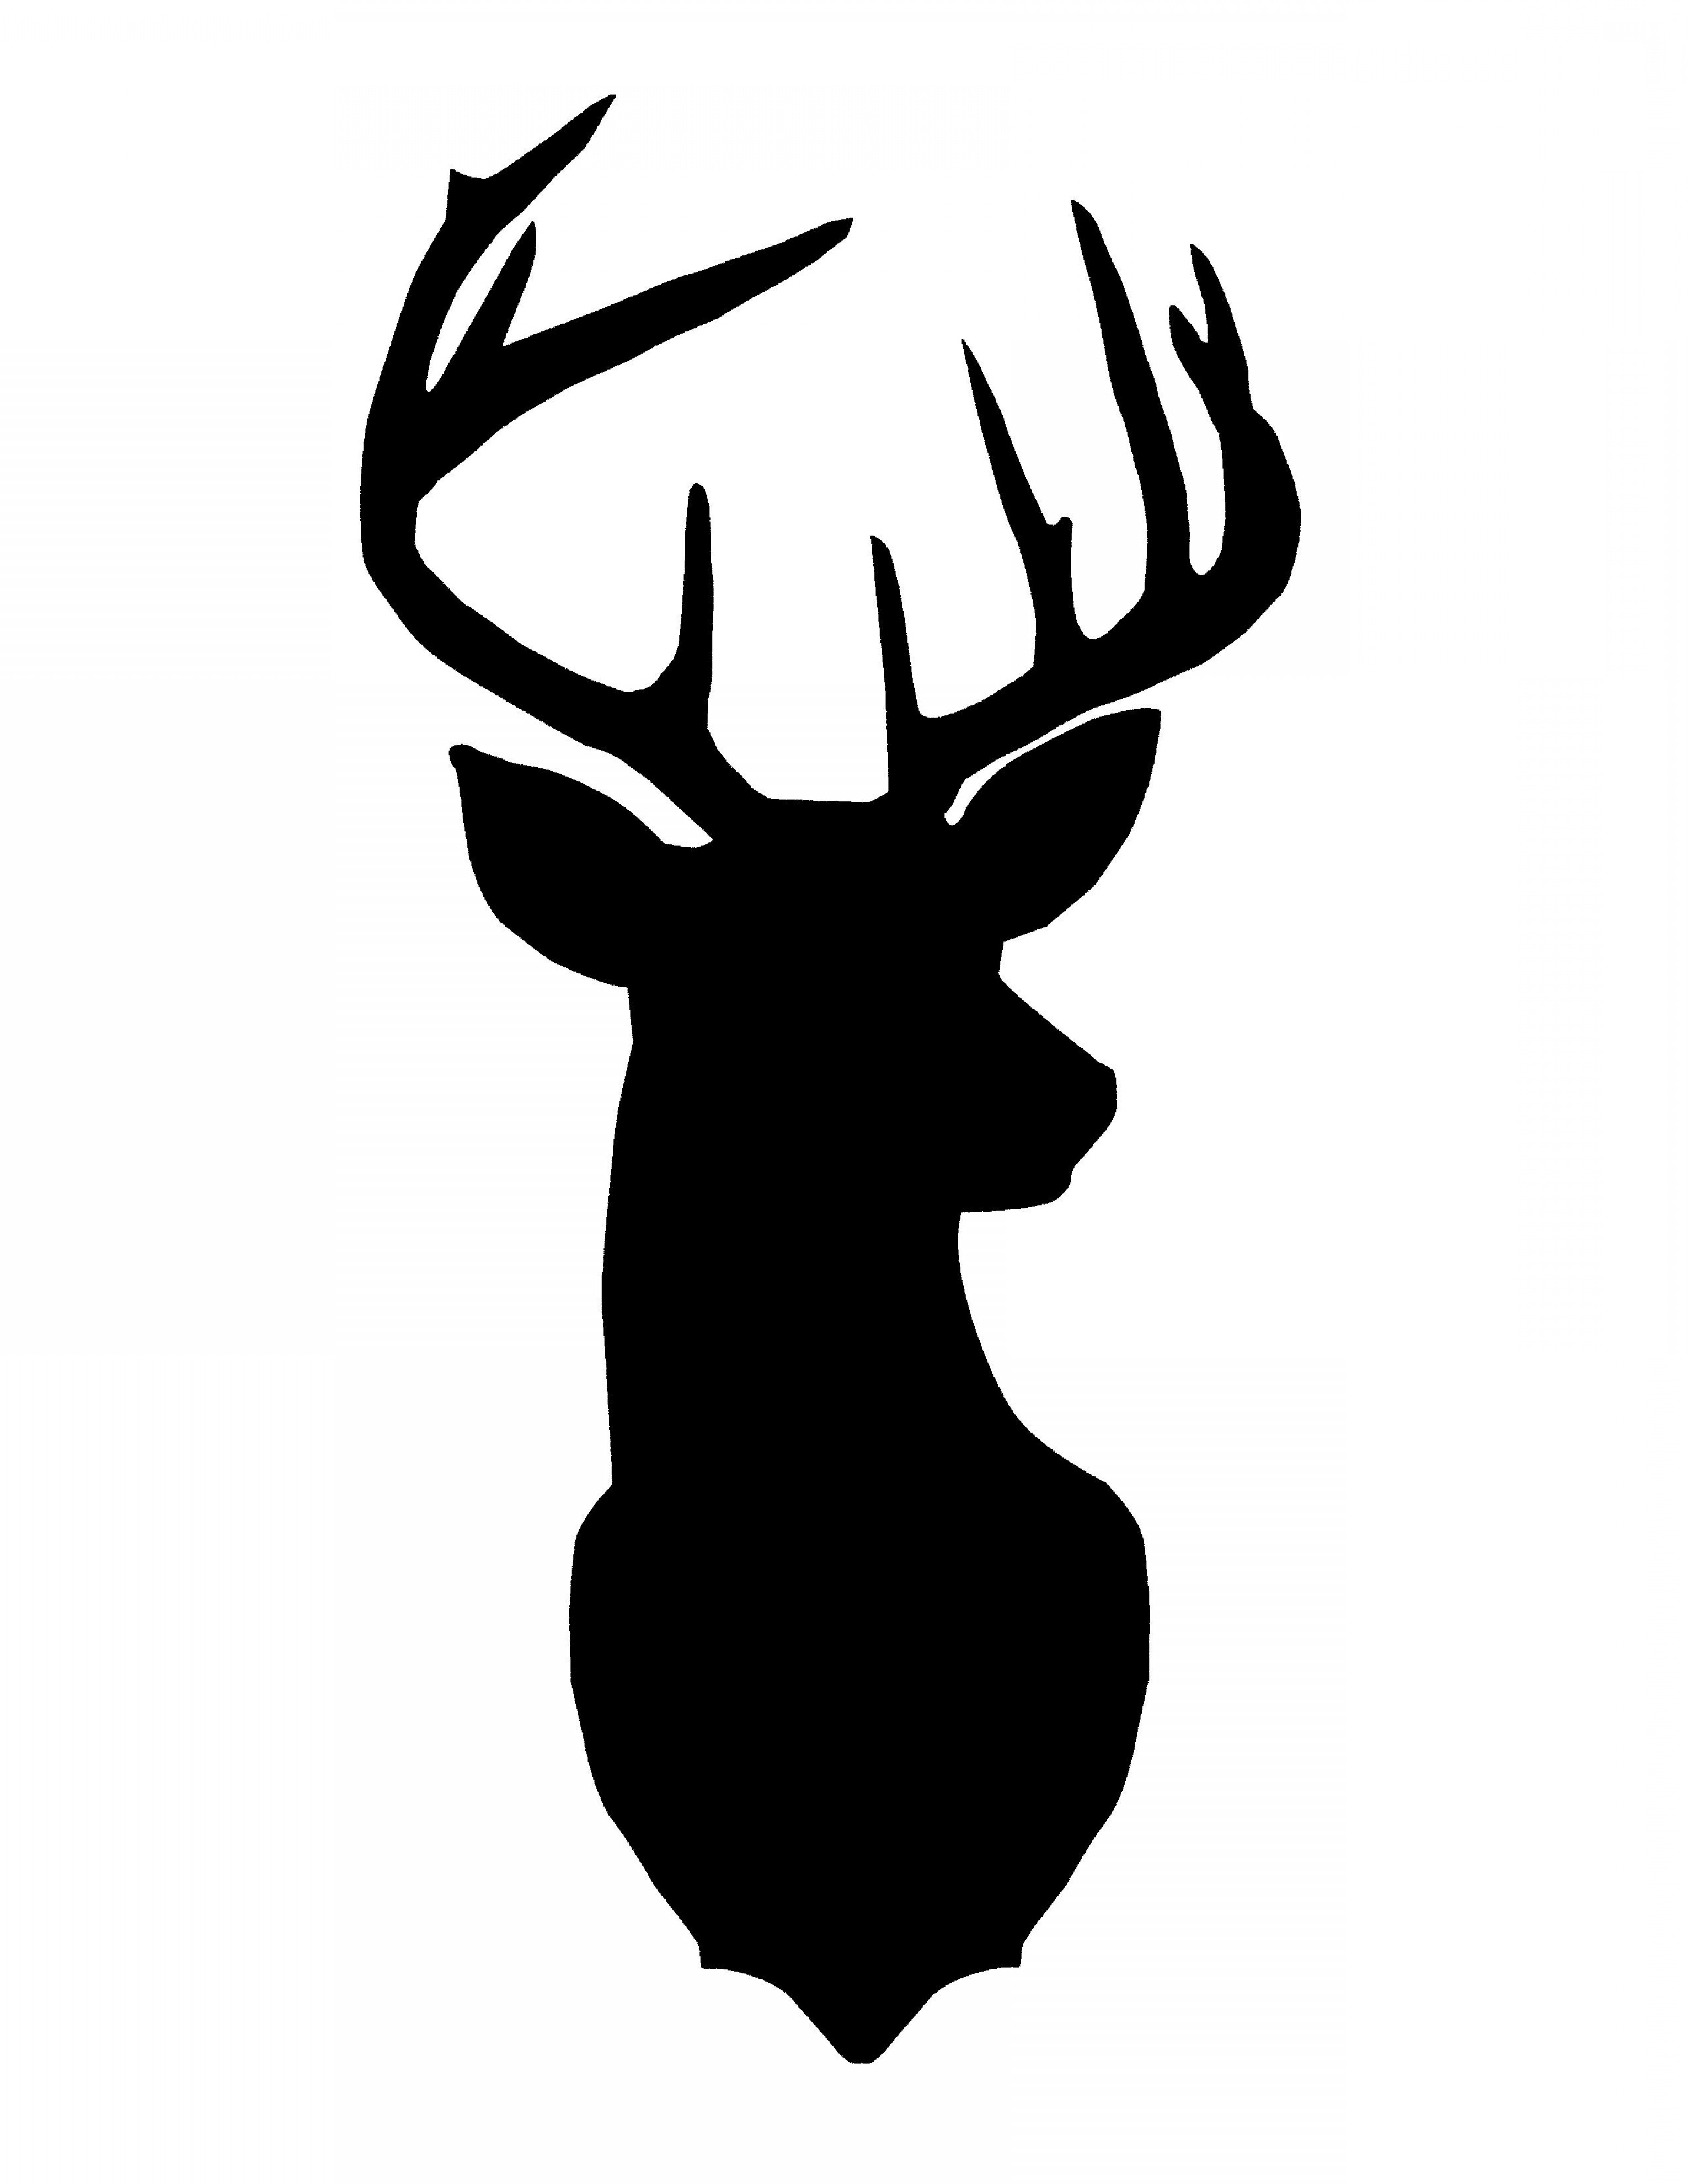 3060x3960 Moose Outline Vector ARENAWP